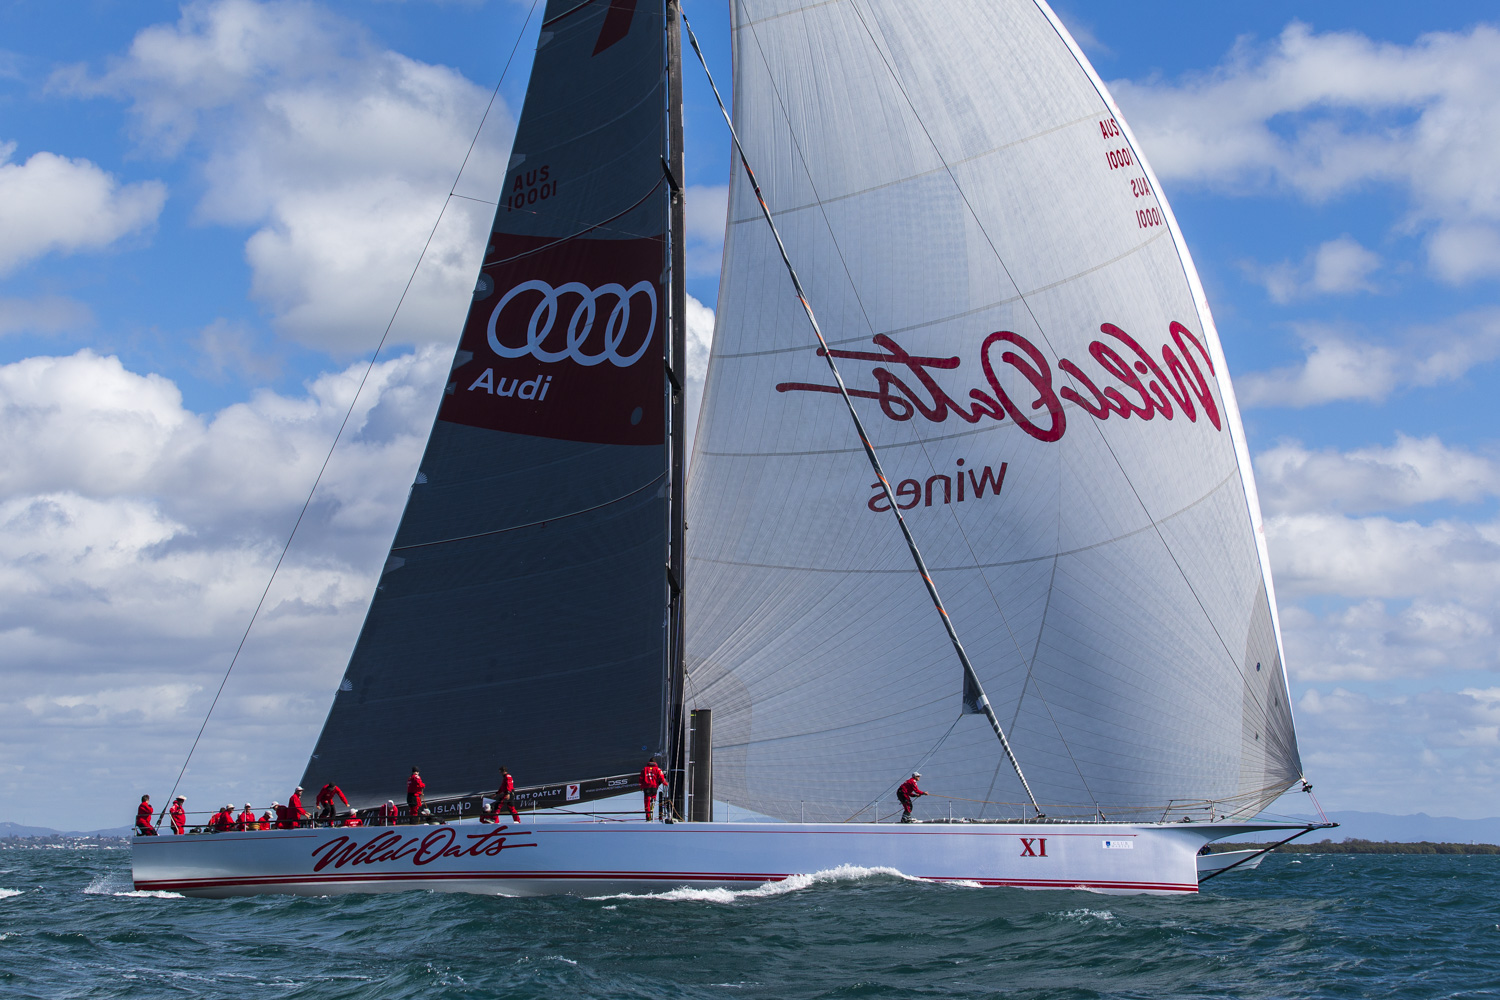 A record breaking run is in the wind for the Rolex Sydney Hobart race